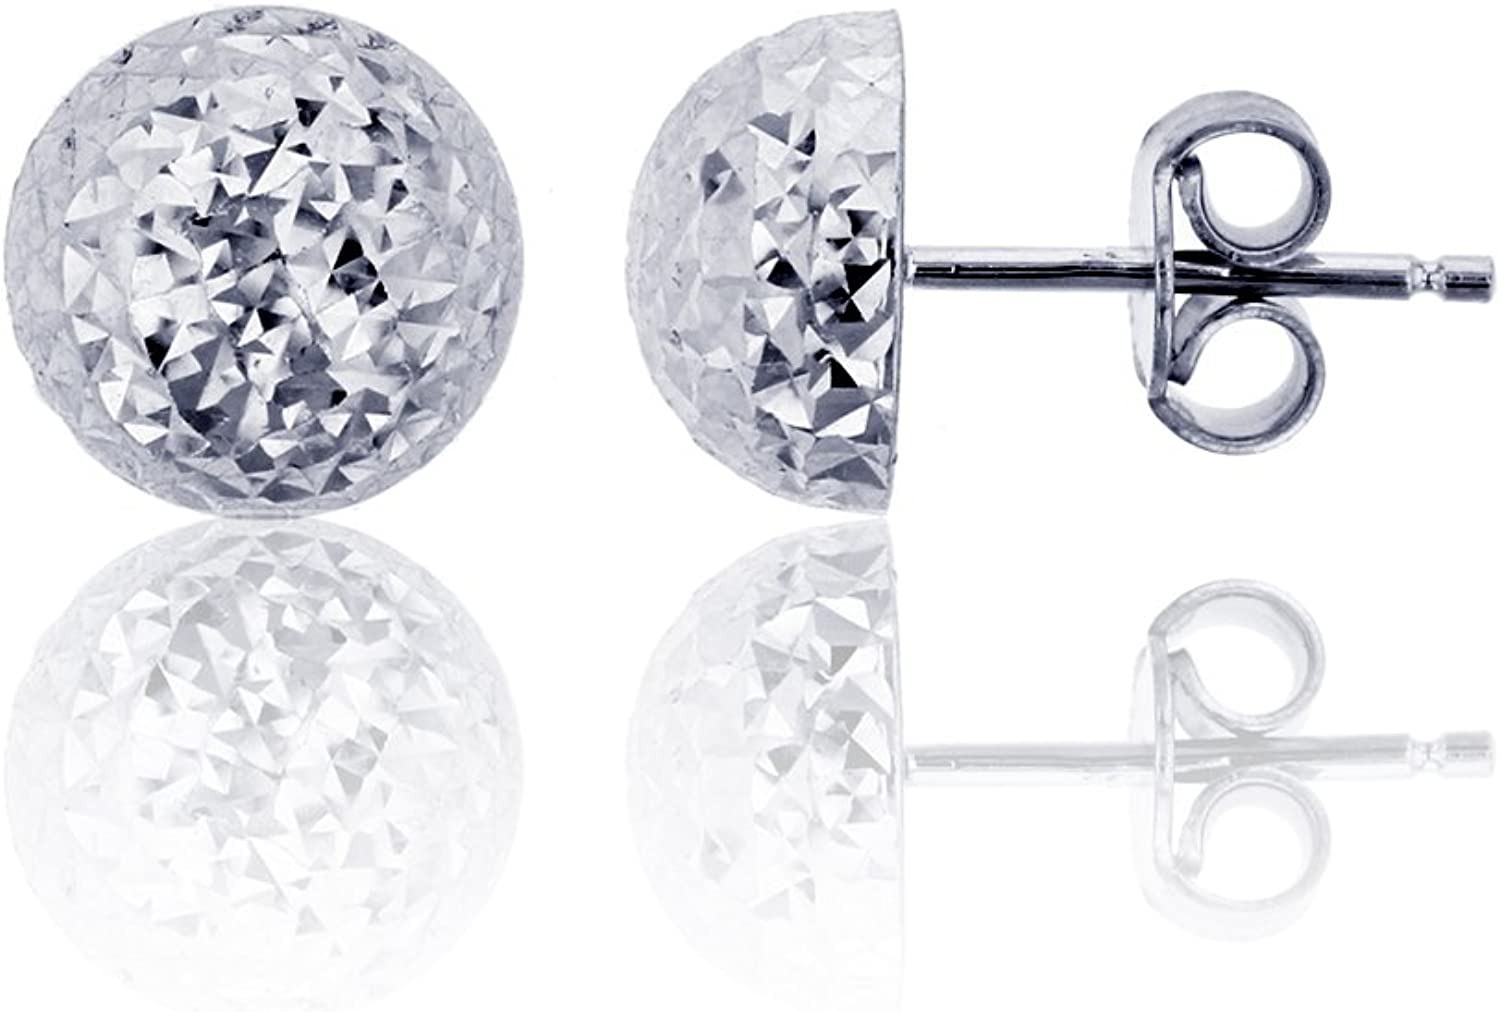 14K White Gold Diamond Cut Half Ball Stud Earring